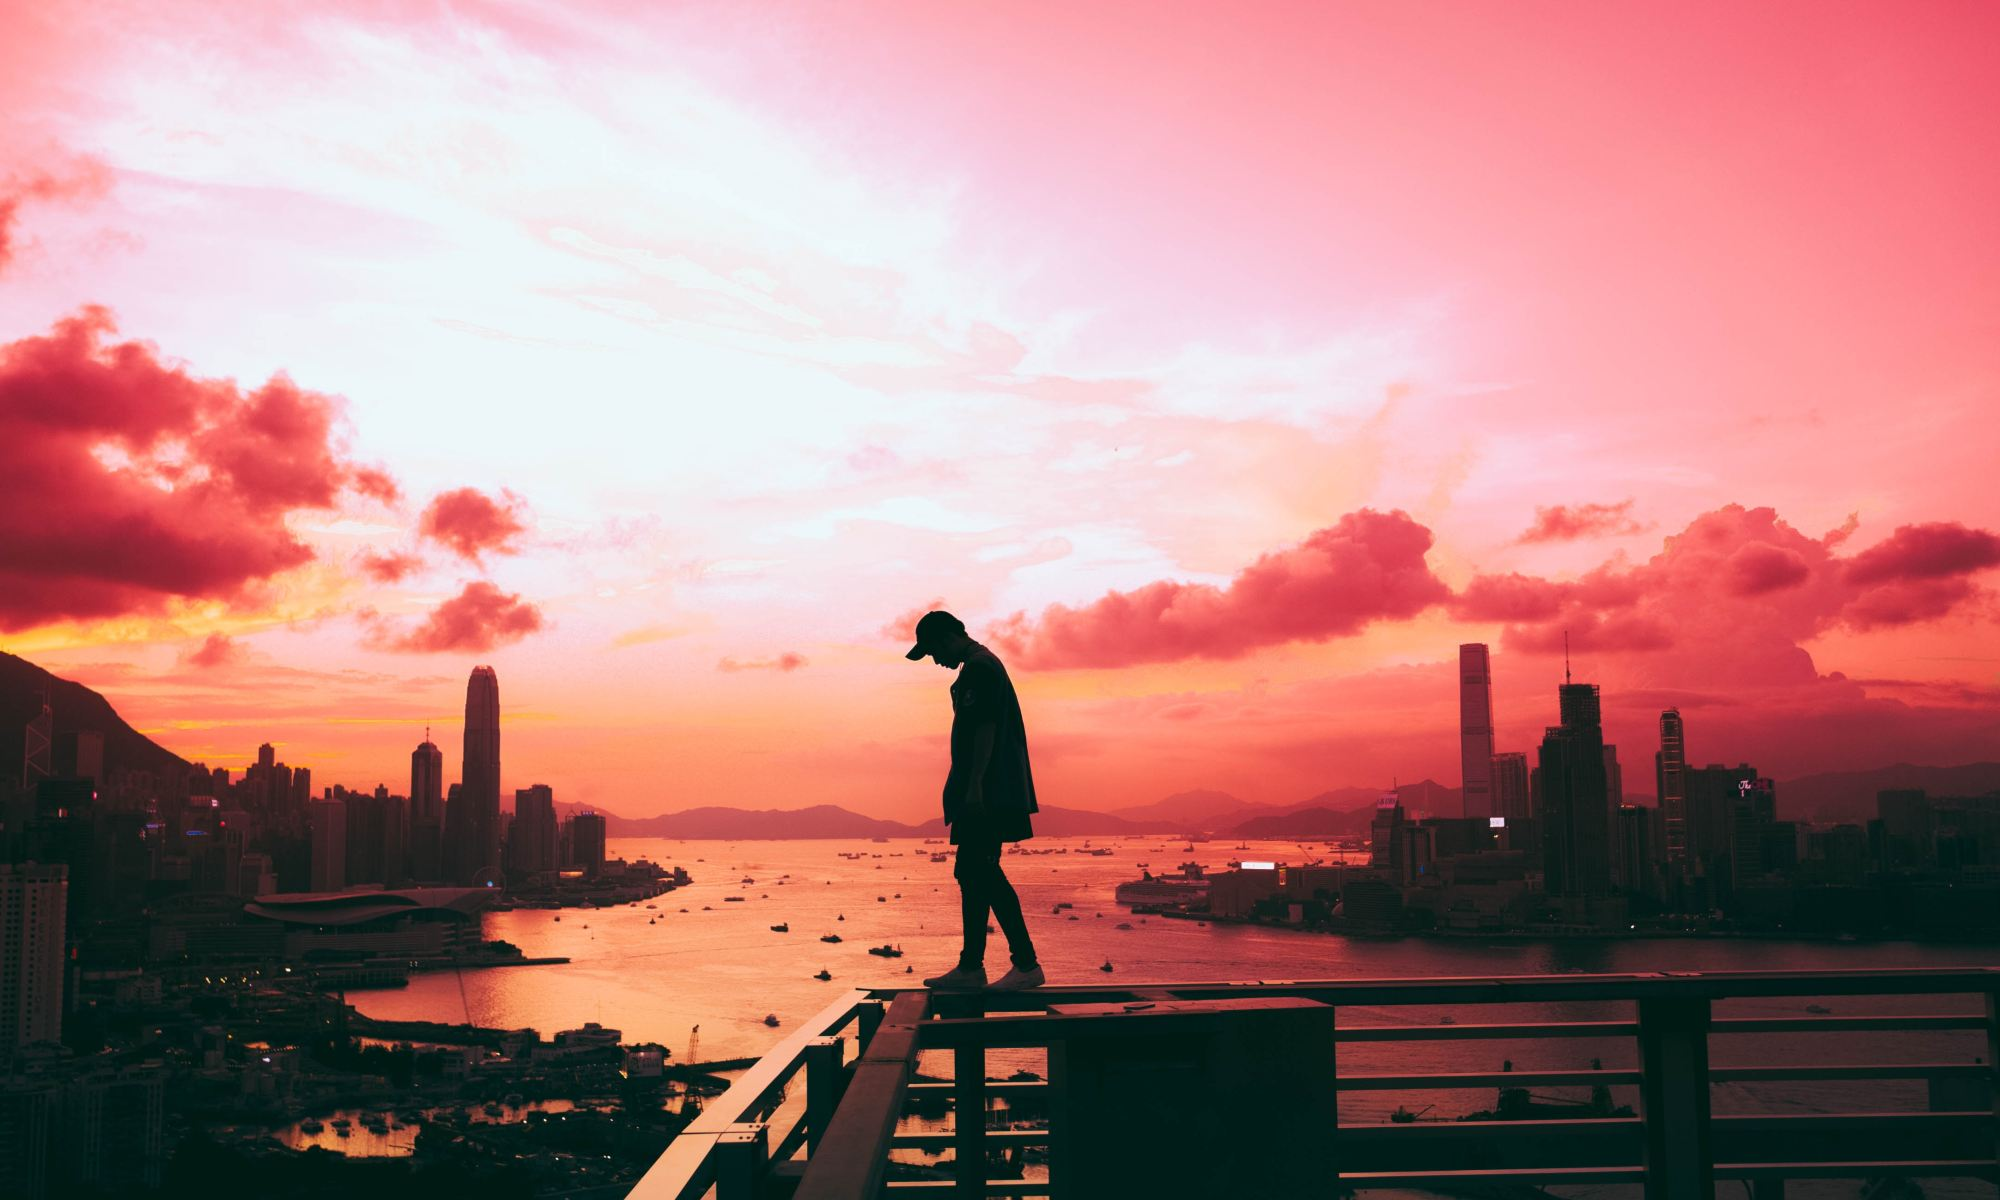 Silhouette of lonely person standing on railing